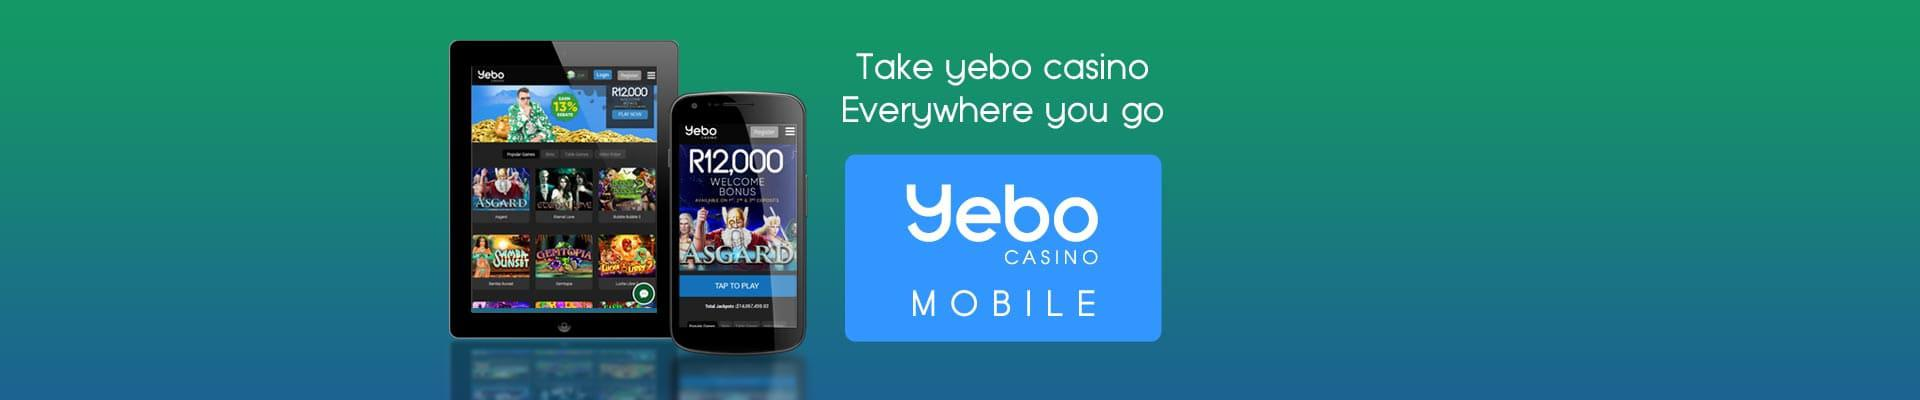 Yebo Casino - legal and licensed online casino